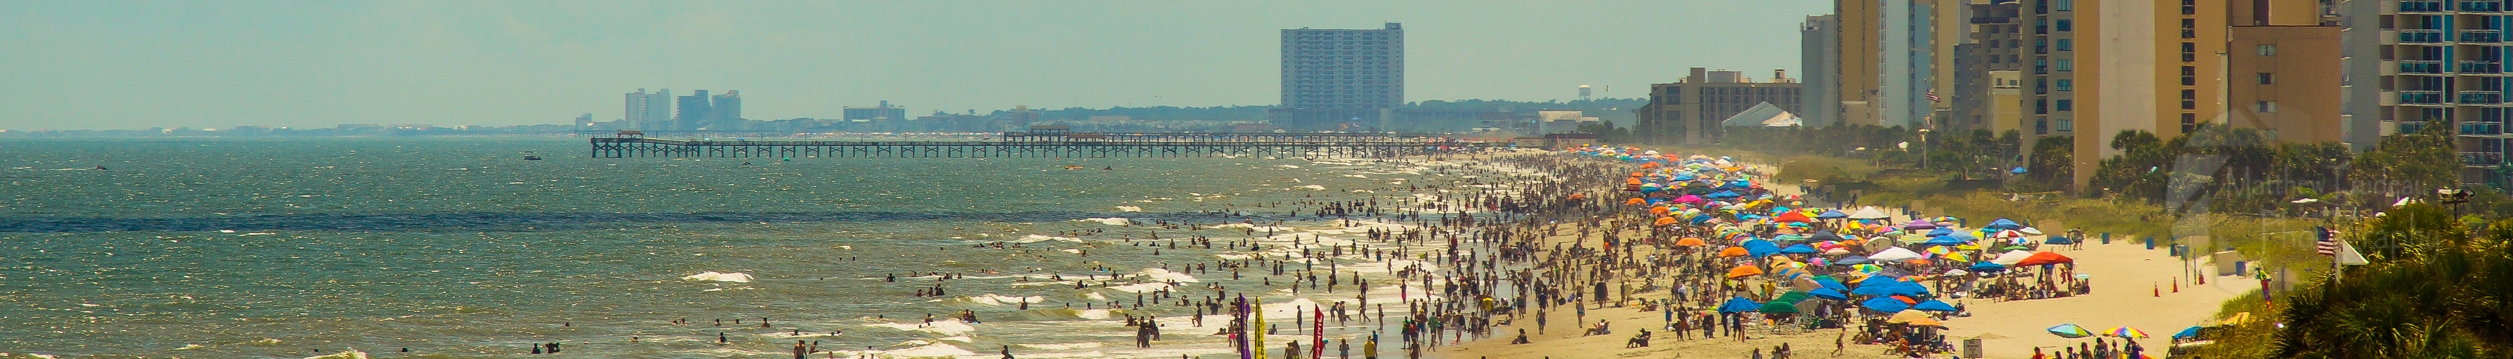 Myrtle Beach – Travel guide at Wikivoyage